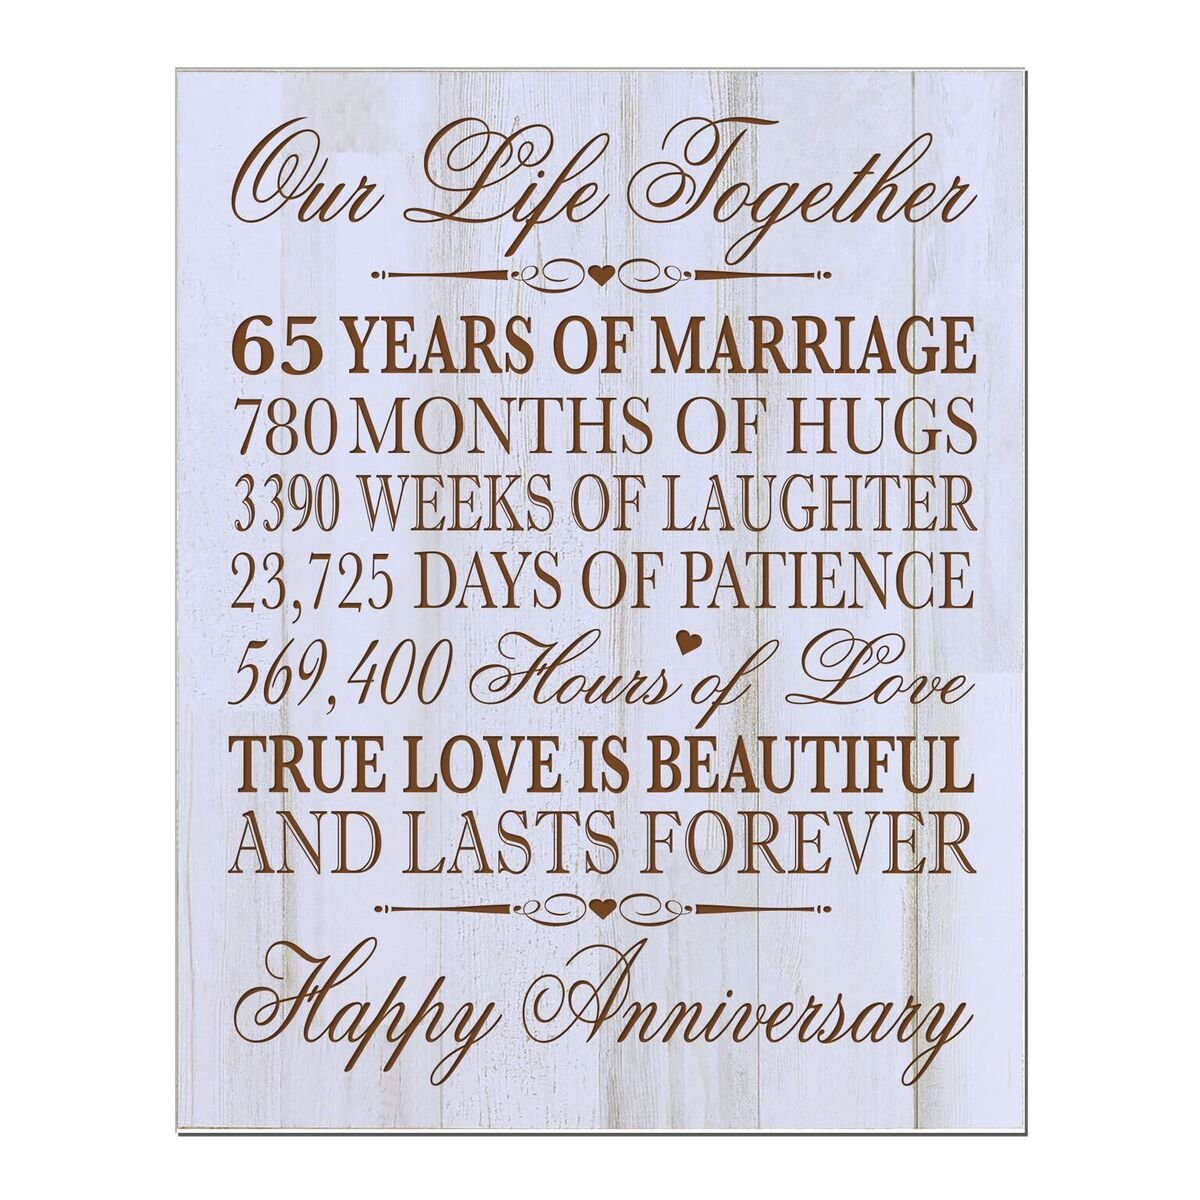 Personalized 65th Wedding Anniversary Wall Plaque Gifts for Couple Parents, 65th for Her,him Custom Engraved 65th Wedding 12'' W X 15'' H Wall Plaque (Distressed White) by LifeSong Milestones